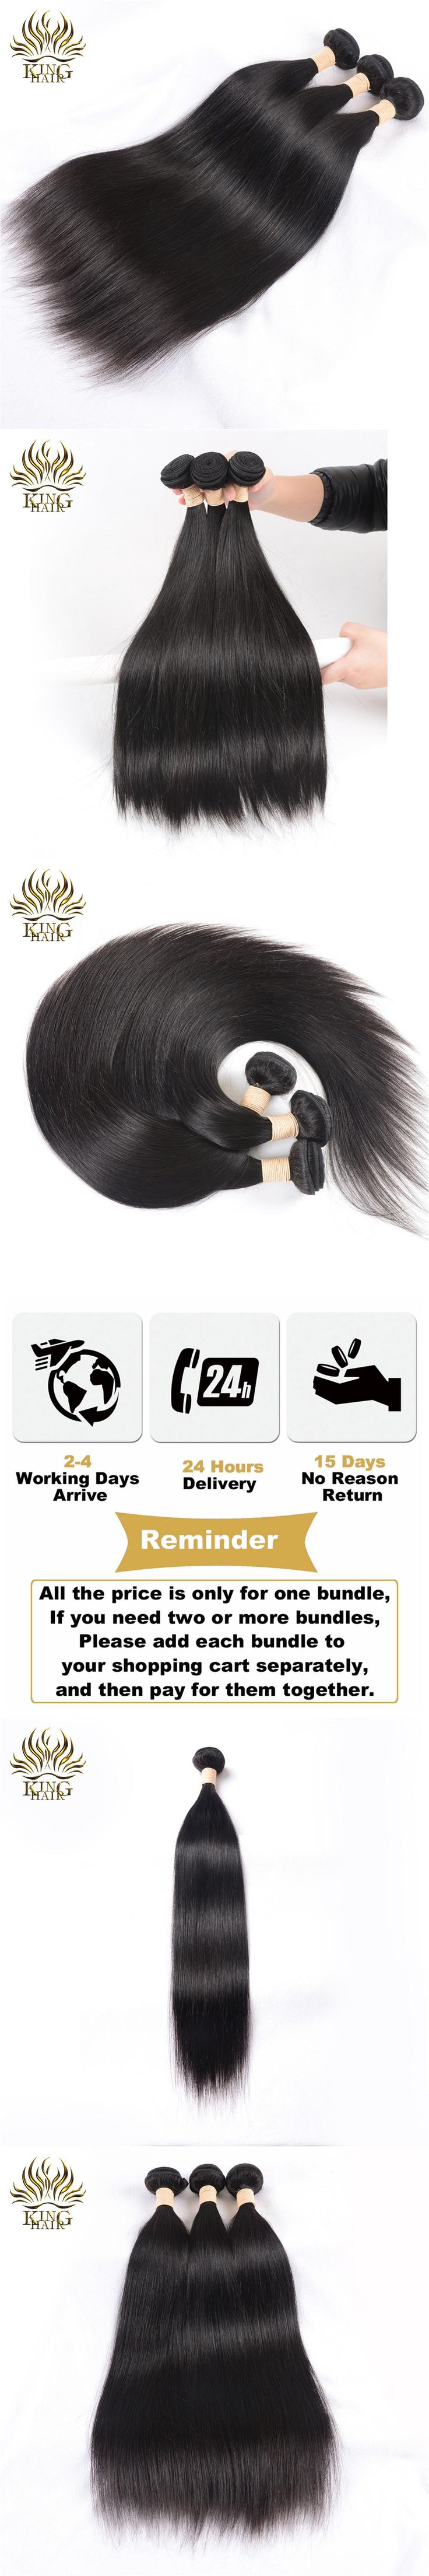 King Hair Peruvian Straight Hair Weave Bundles Natural Color 8-28inch 100% Human Hair Weave Remy Hair 1 pcs Machine Double Weft